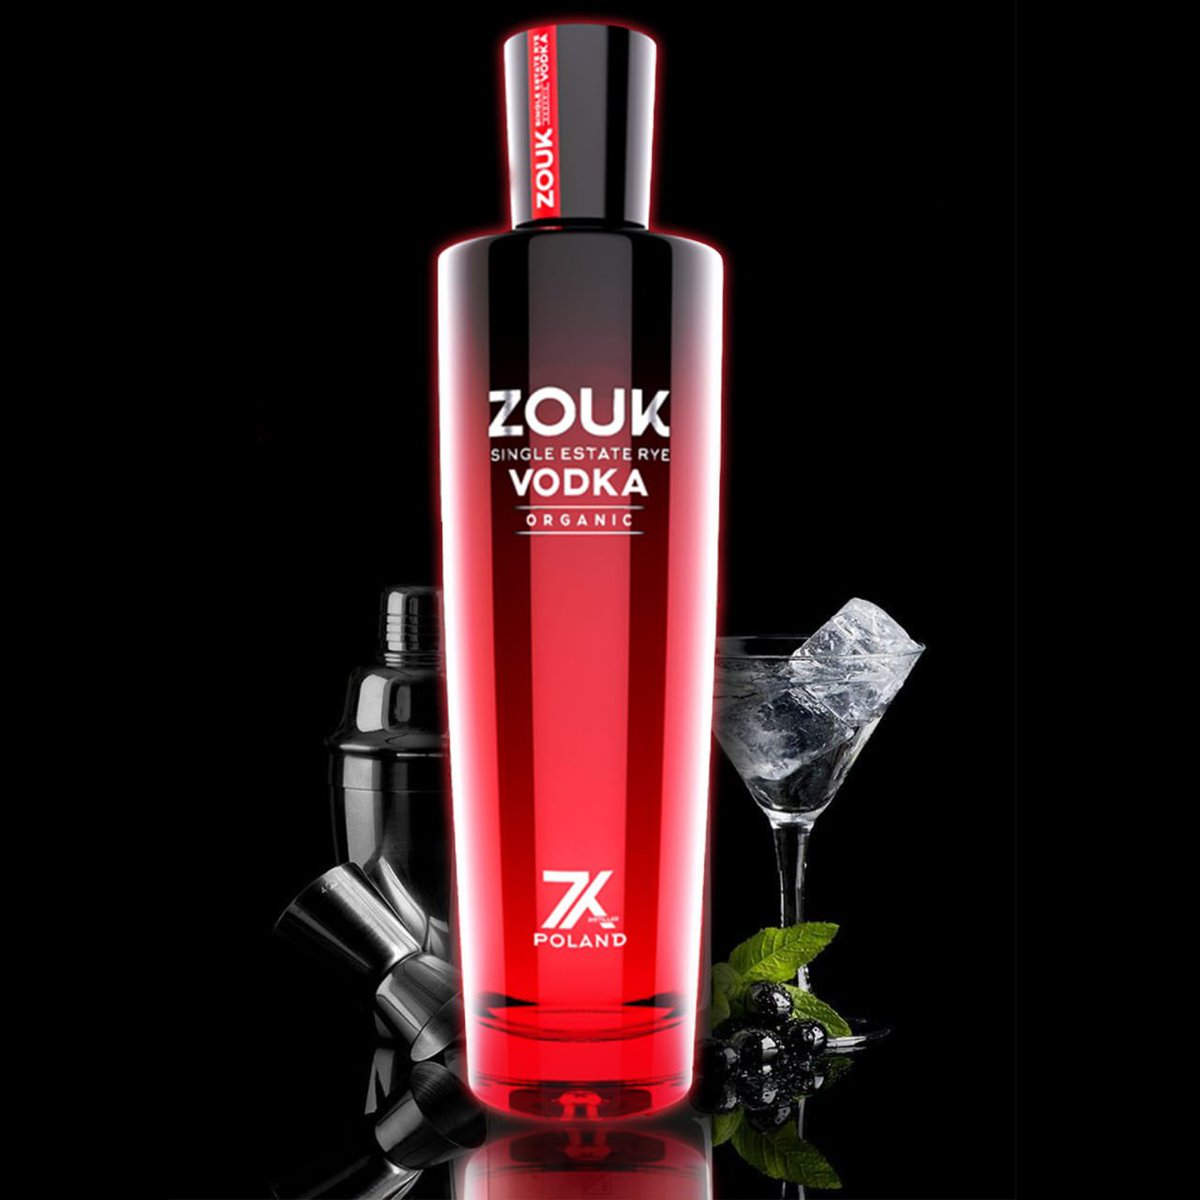 Drive away all your blues and enjoy your evening with Zouk vodka               #vodka #wednesdayvibes #zoukvodka #wednesdaymood #newyear2021 #welcomenewyear #welcome2020✨